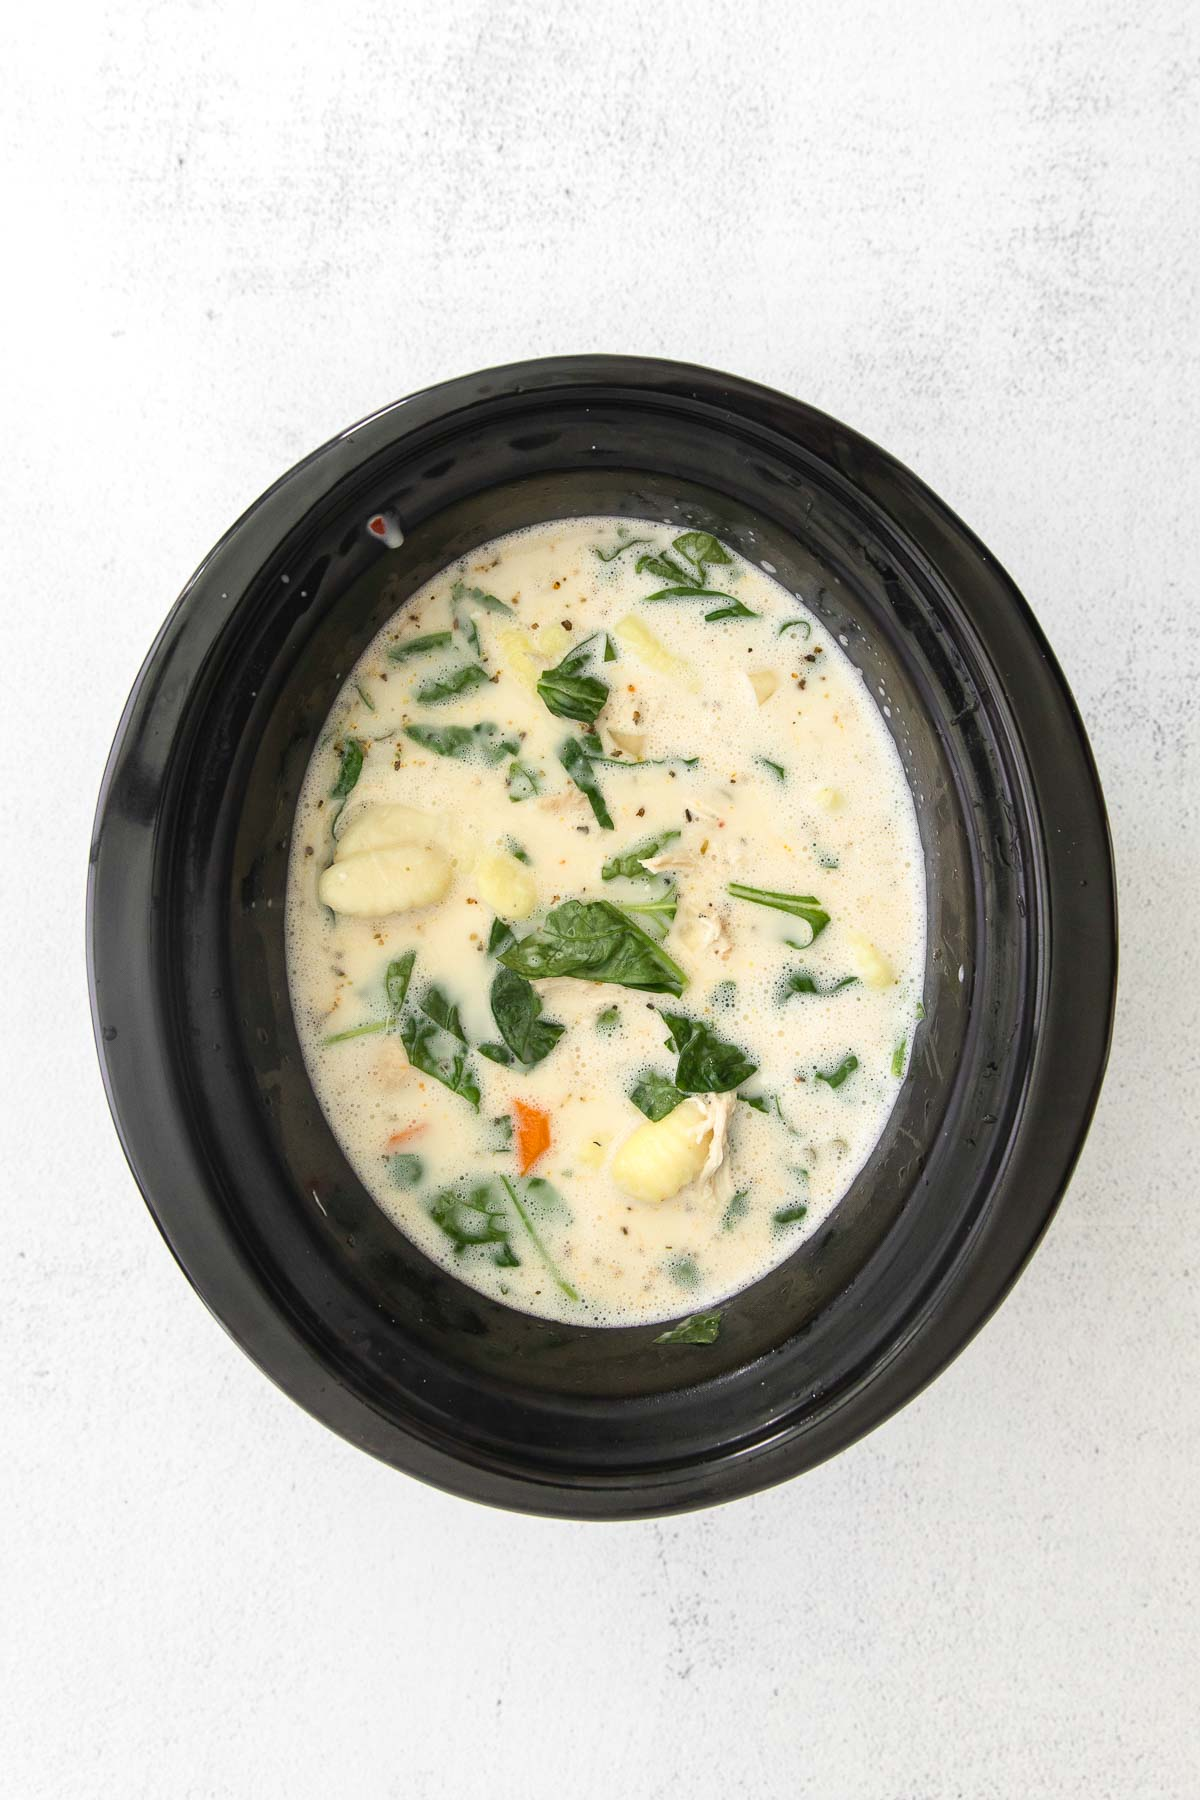 creamy soup with spinach, chicken and gnocchi in a black slow cooker